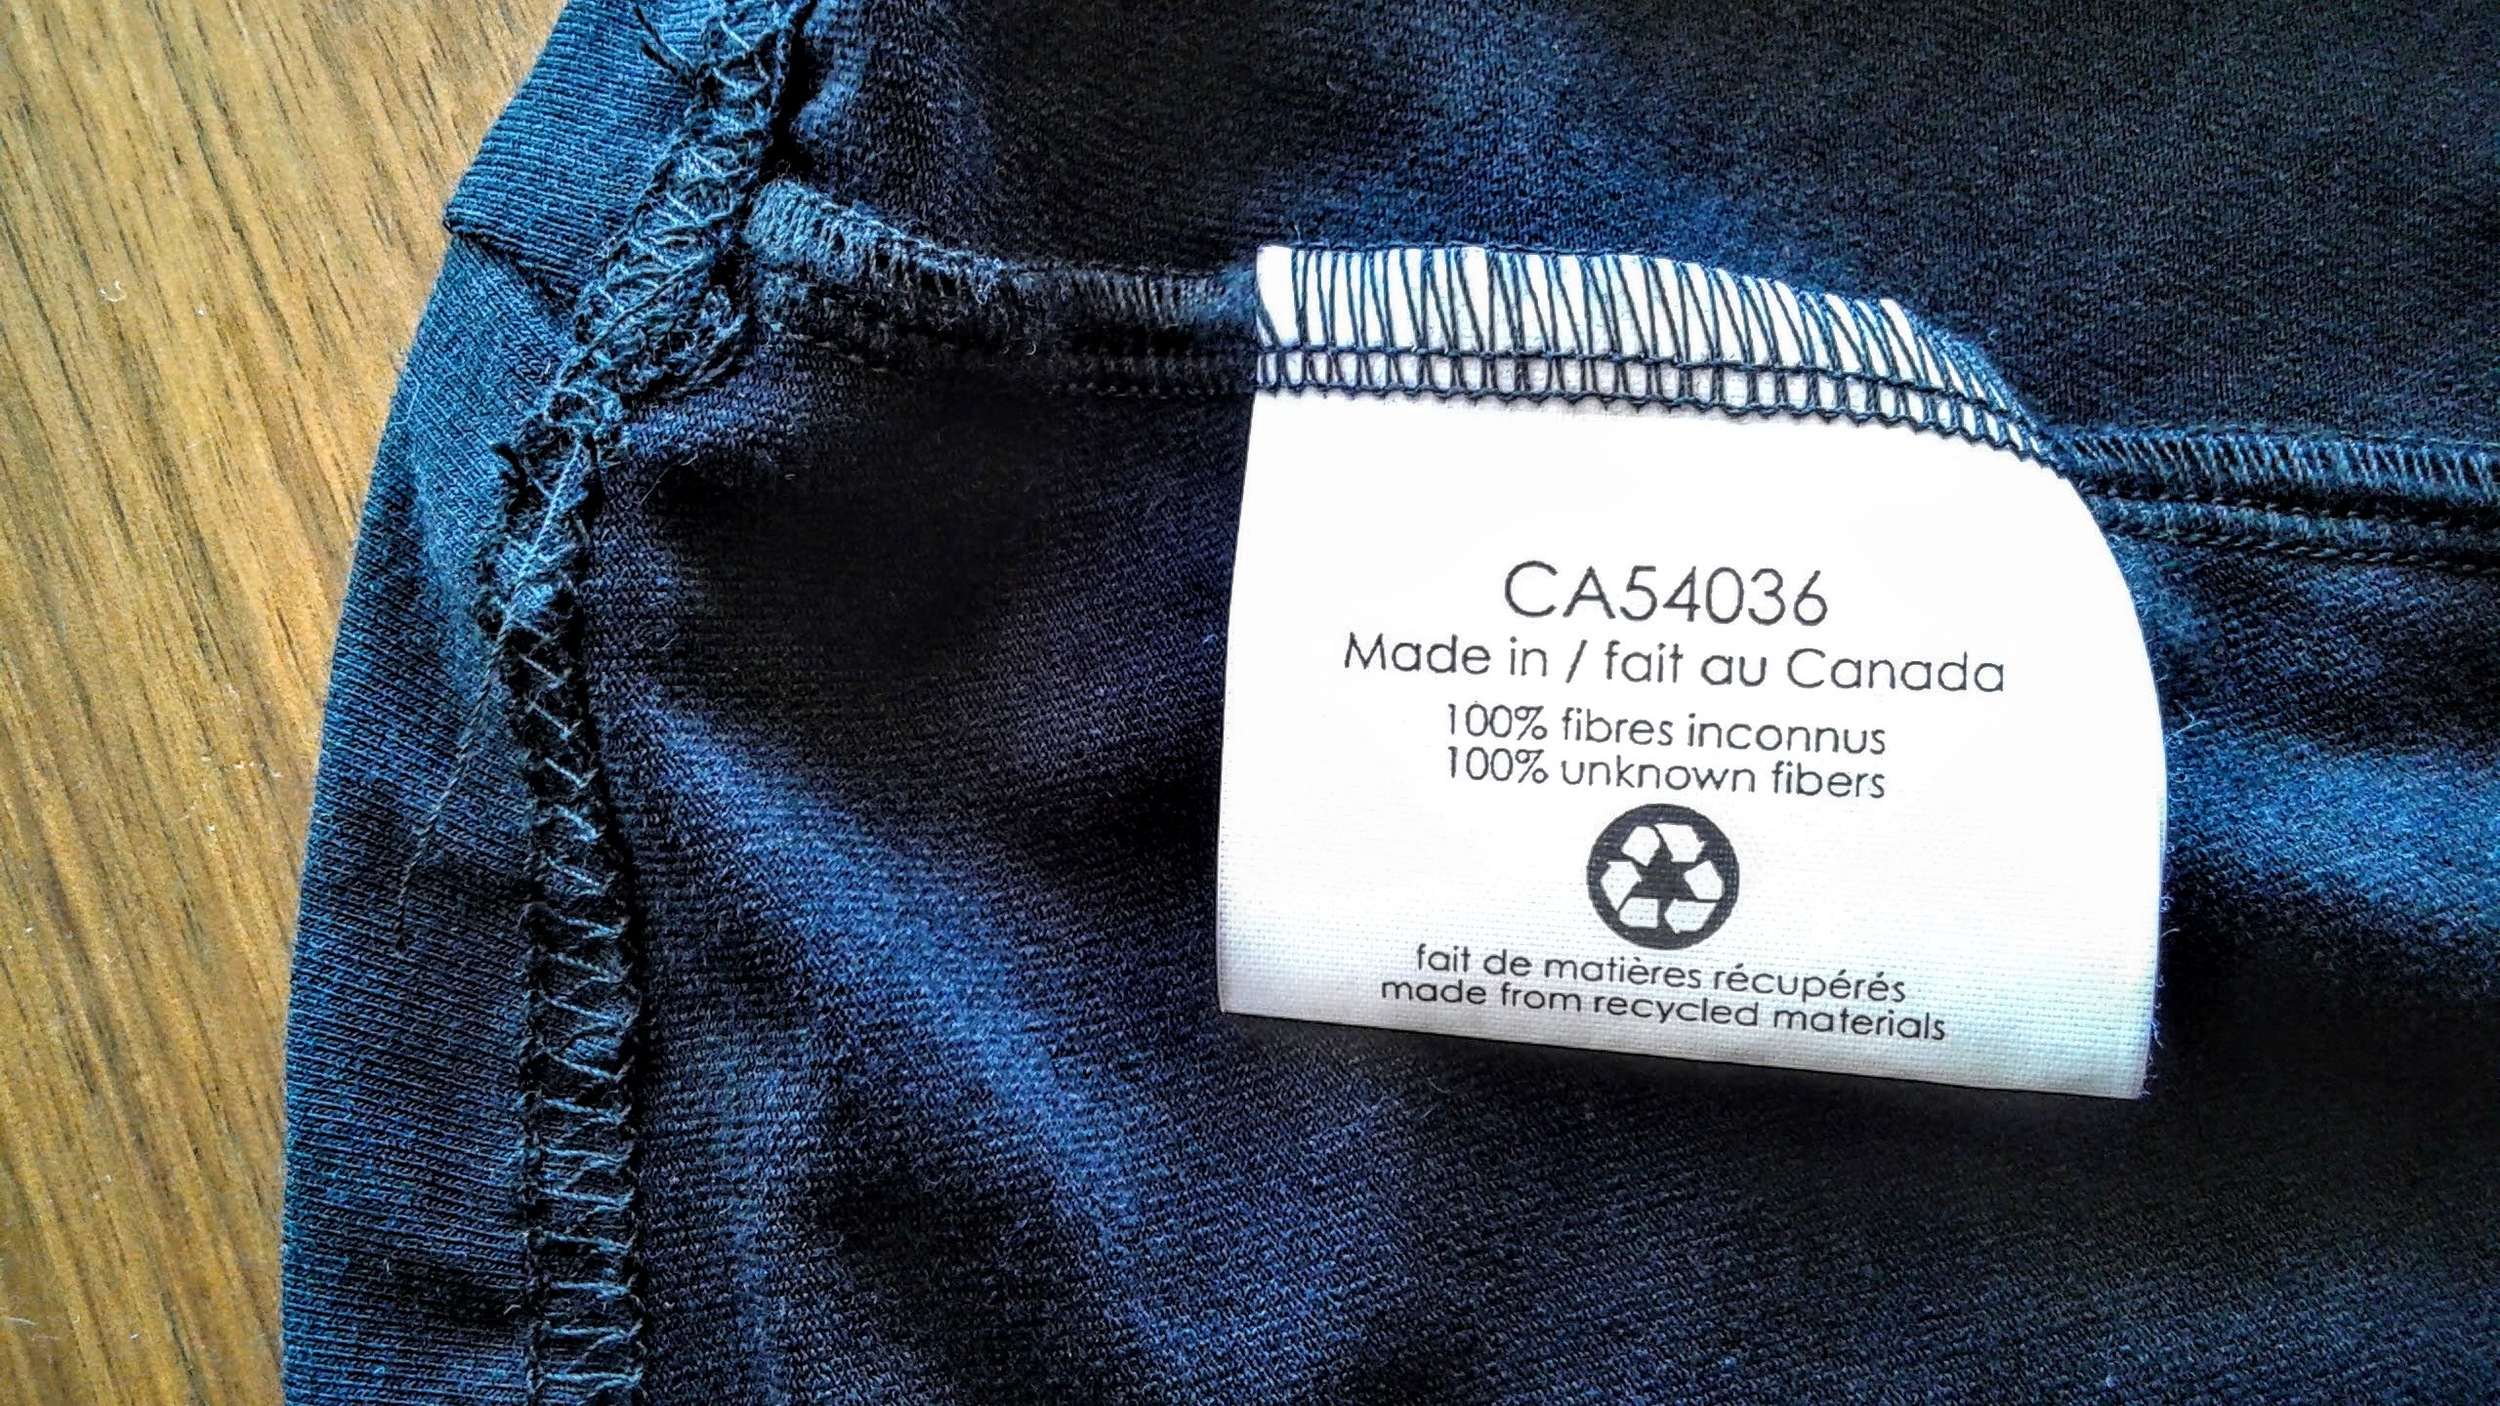 Just some unknown recycled fibres, made in Canada, as one does.